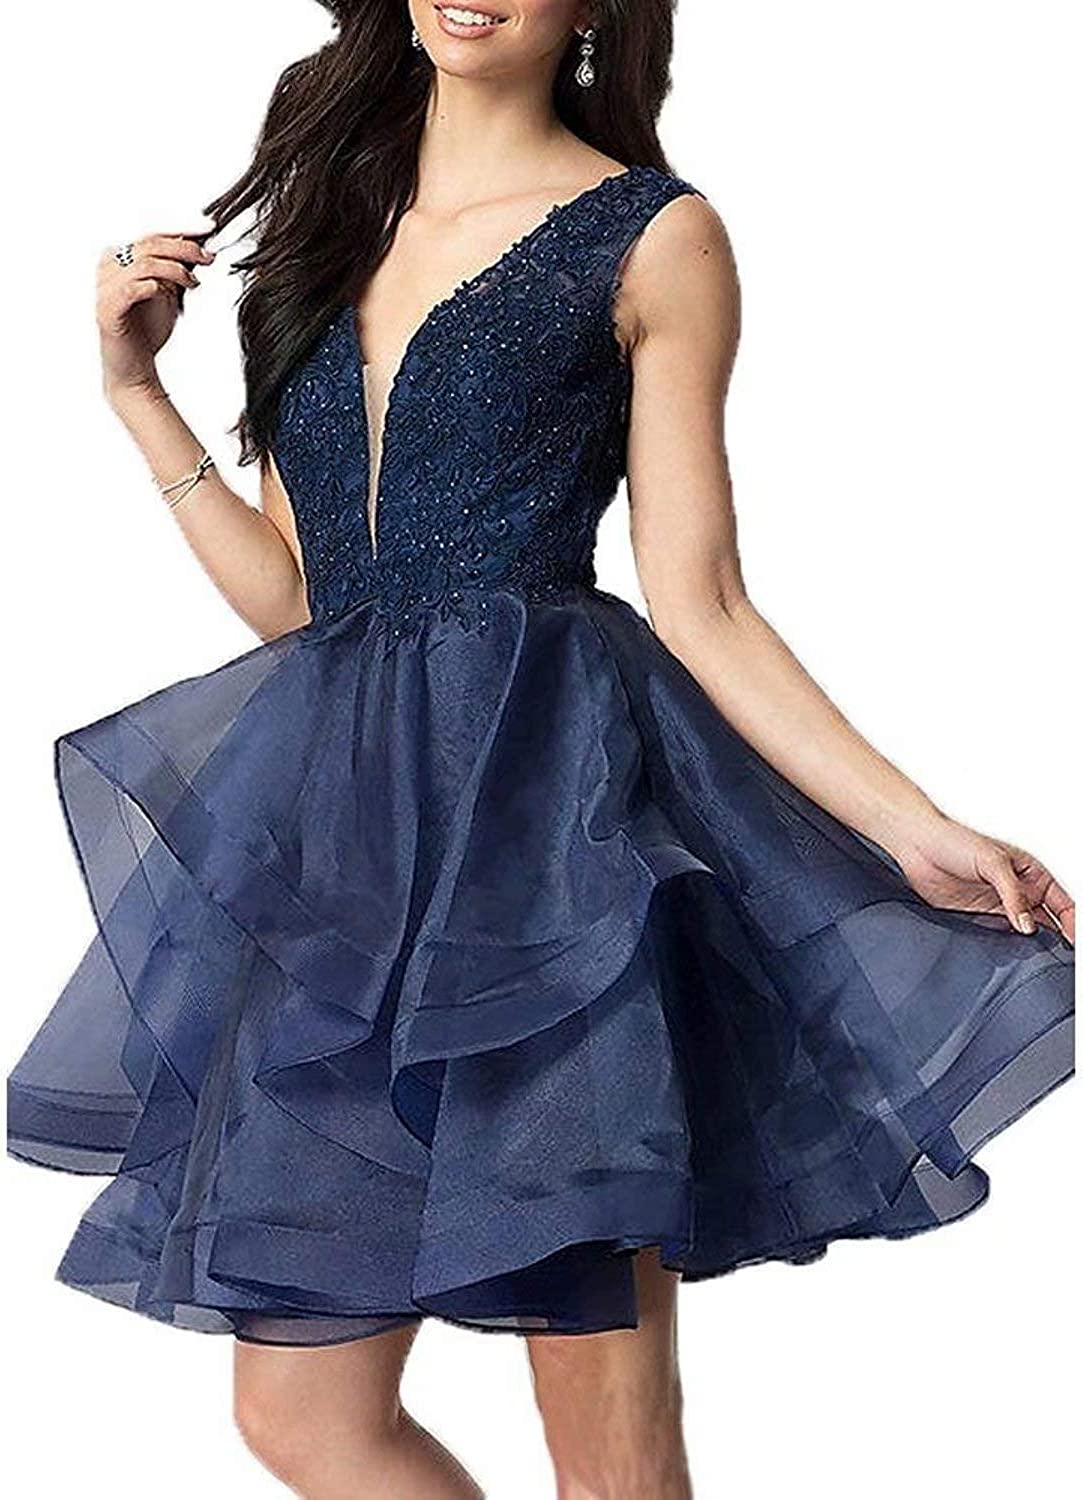 JOFE Lace Applique Homecoming Dresses Short Organza Prom Cocktail Party Gowns